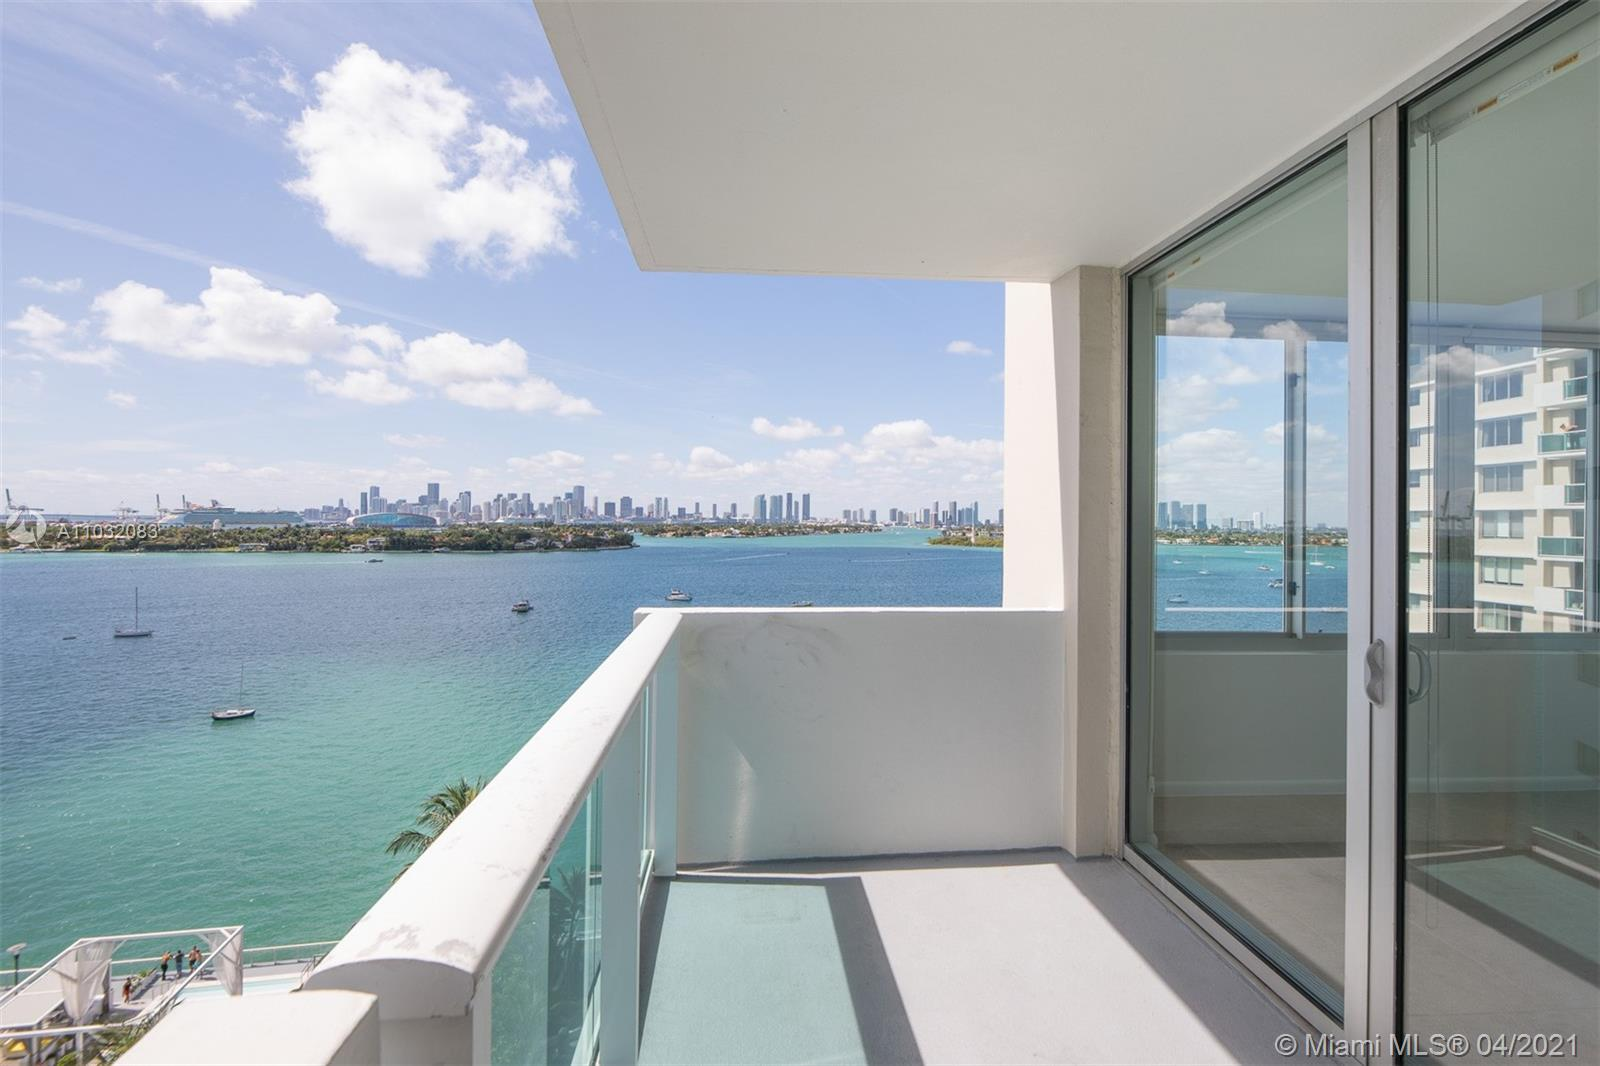 Rarely available, largest 1/1.5 floor plan at Mirador with direct east bay views. Most desirable floorplan with oversized windows facing the bay. Breathtaking sunset views of Star Island, Biscayne Bay and the signature Downtown Miami Skyline. Make this home your masterpiece. Residence features impact windows, solar shades, and some additional modern touches. Lots of potential with this million dollar view. Ideal location next to Mondrian, 2 blocks Shops at West Avenue & Whole Foods supermarket. Only 4.5 blocks to Lincoln Rd and minutes to world famous Ocean Drive. Don't miss this opportunity.